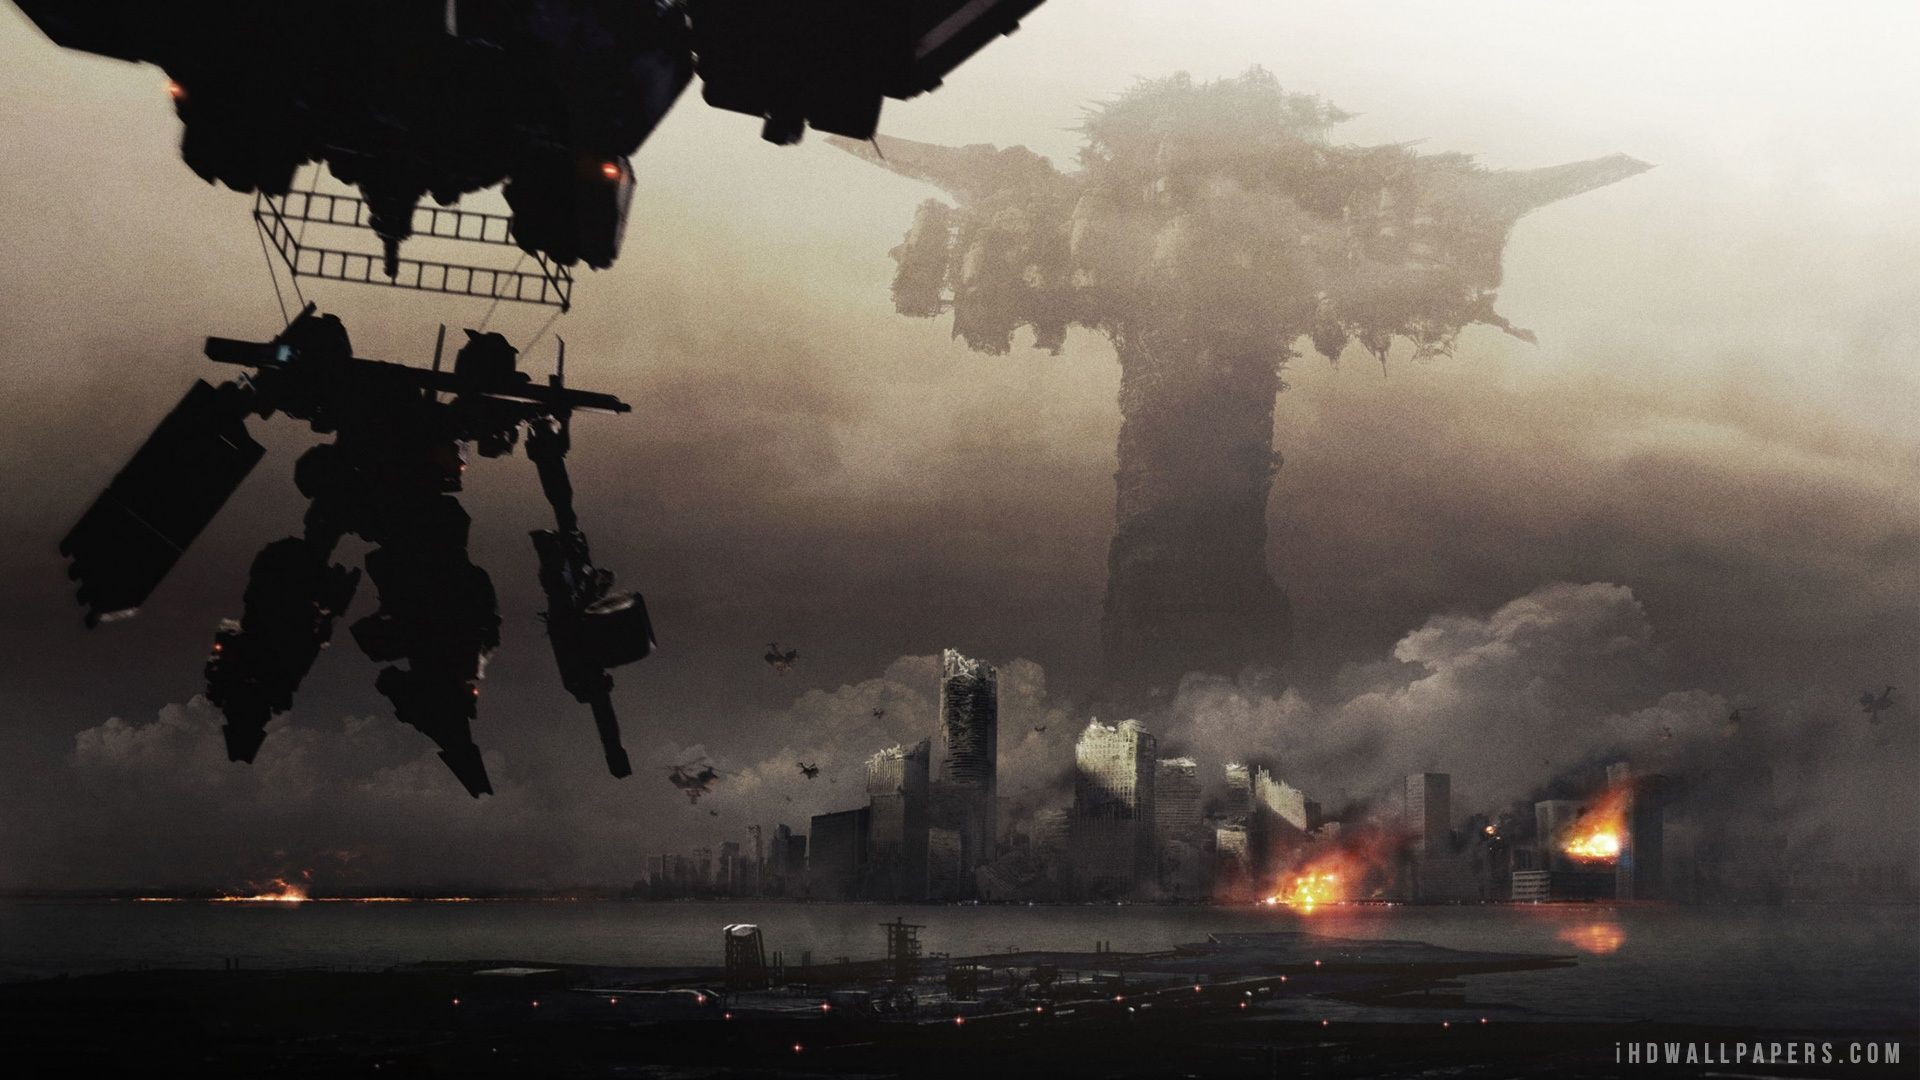 Armored core verdict day hd wallpaper ihd wallpapers mechs armored core verdict day hd wallpaper ihd wallpapers voltagebd Images